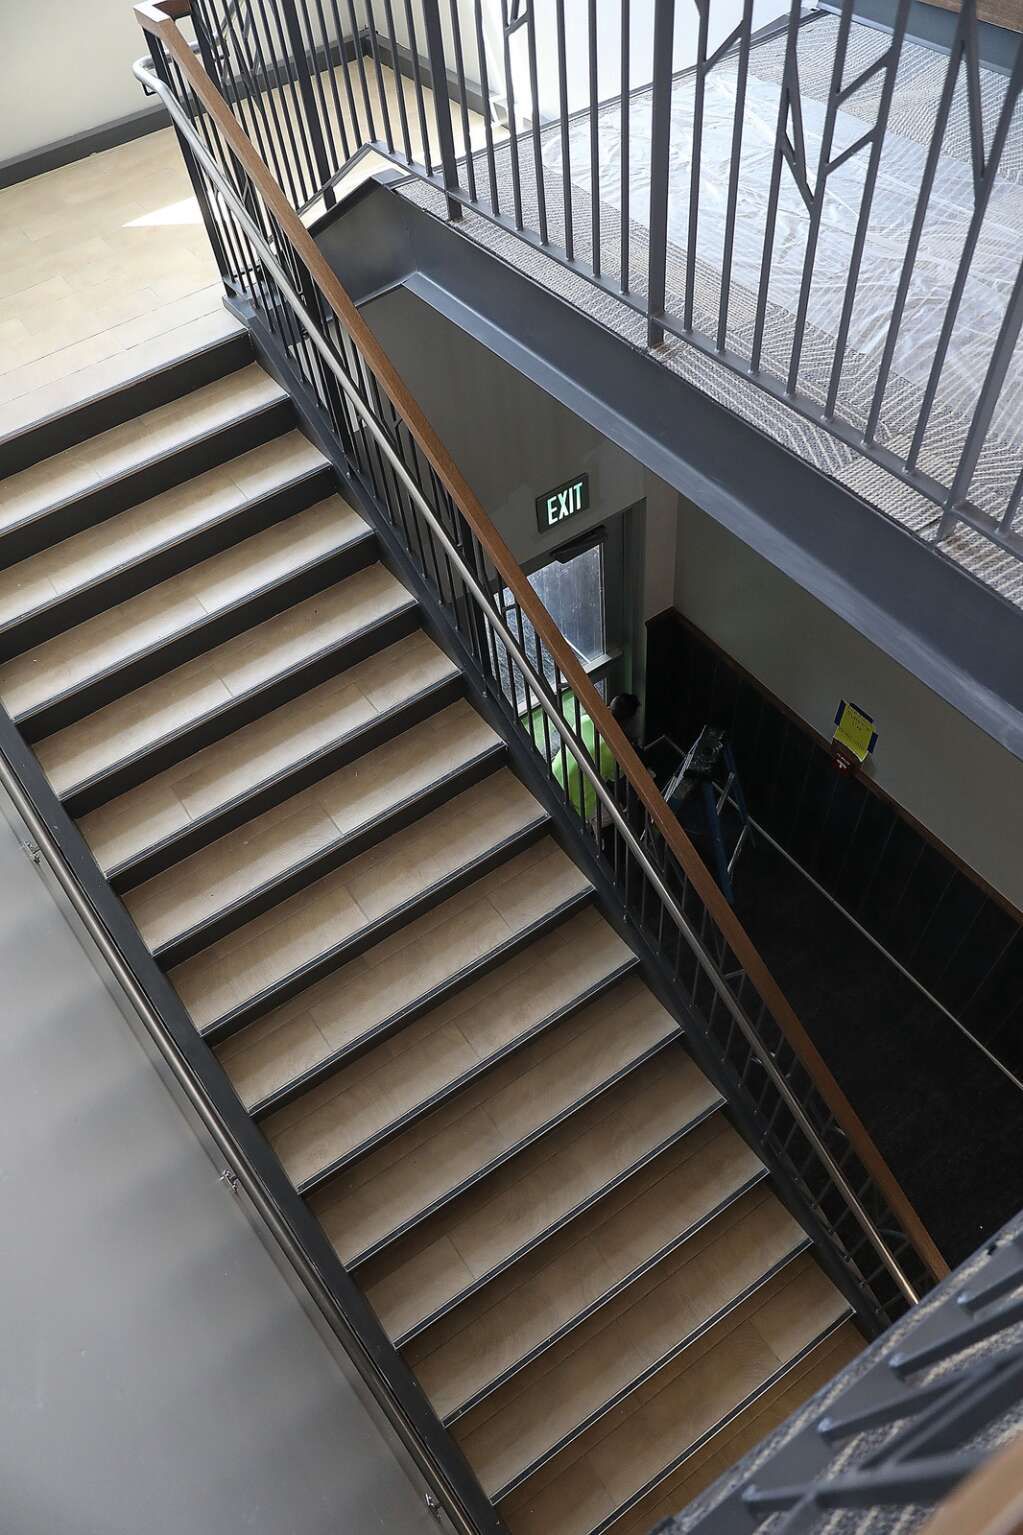 Students will soon be climbing the staircase at the new Sleeping Giant School. (Photo by John F. Russell)